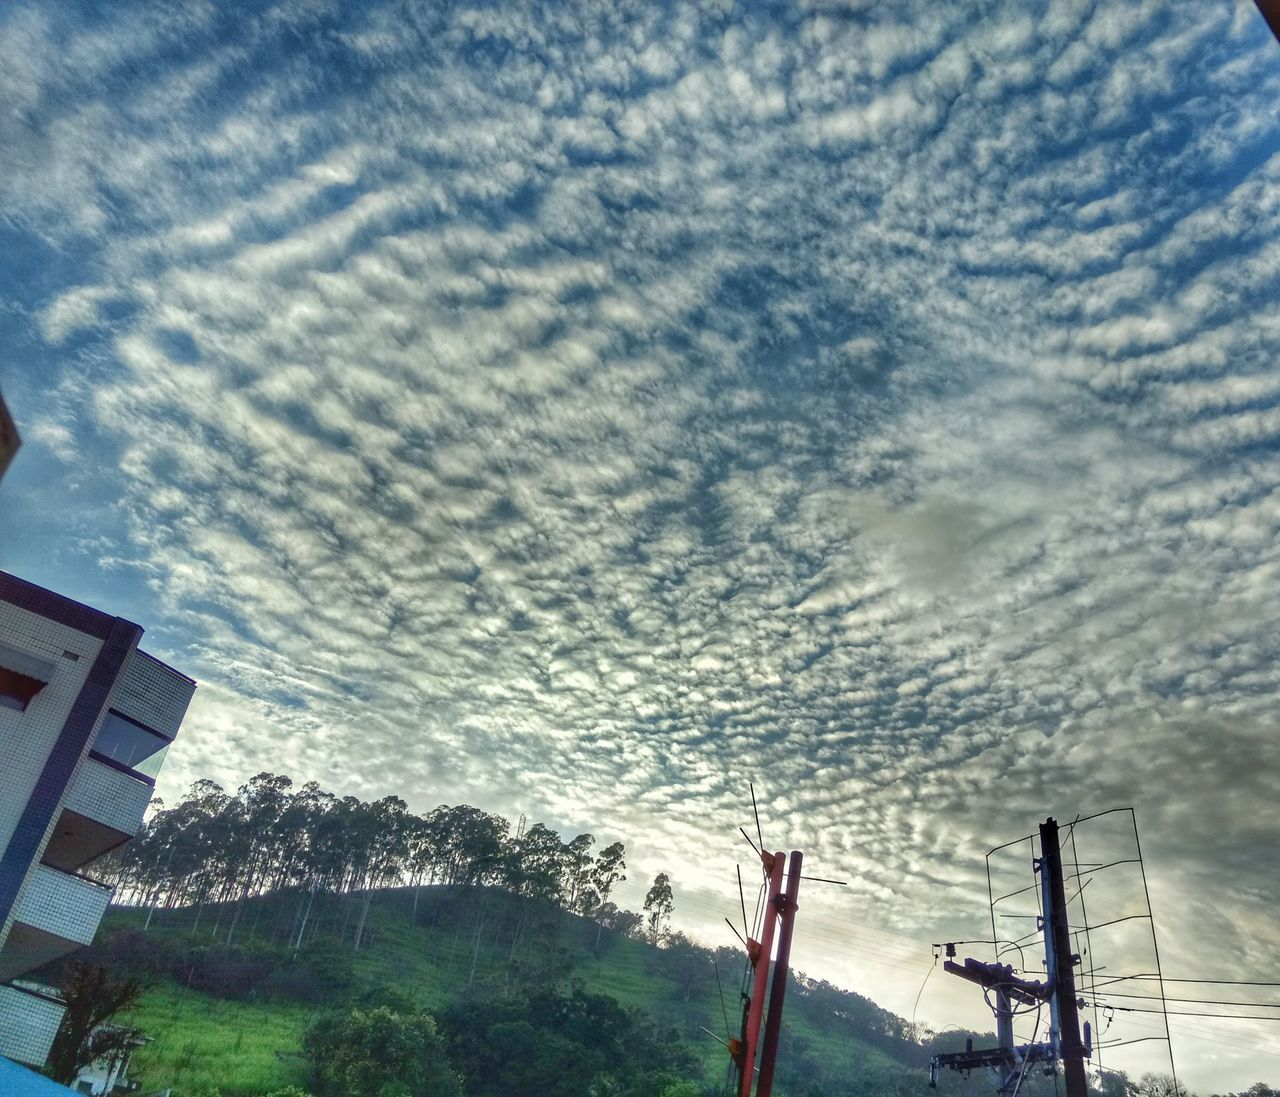 cloud - sky, sky, low angle view, nature, tree, beauty in nature, no people, built structure, architecture, building exterior, outdoors, day, scenics